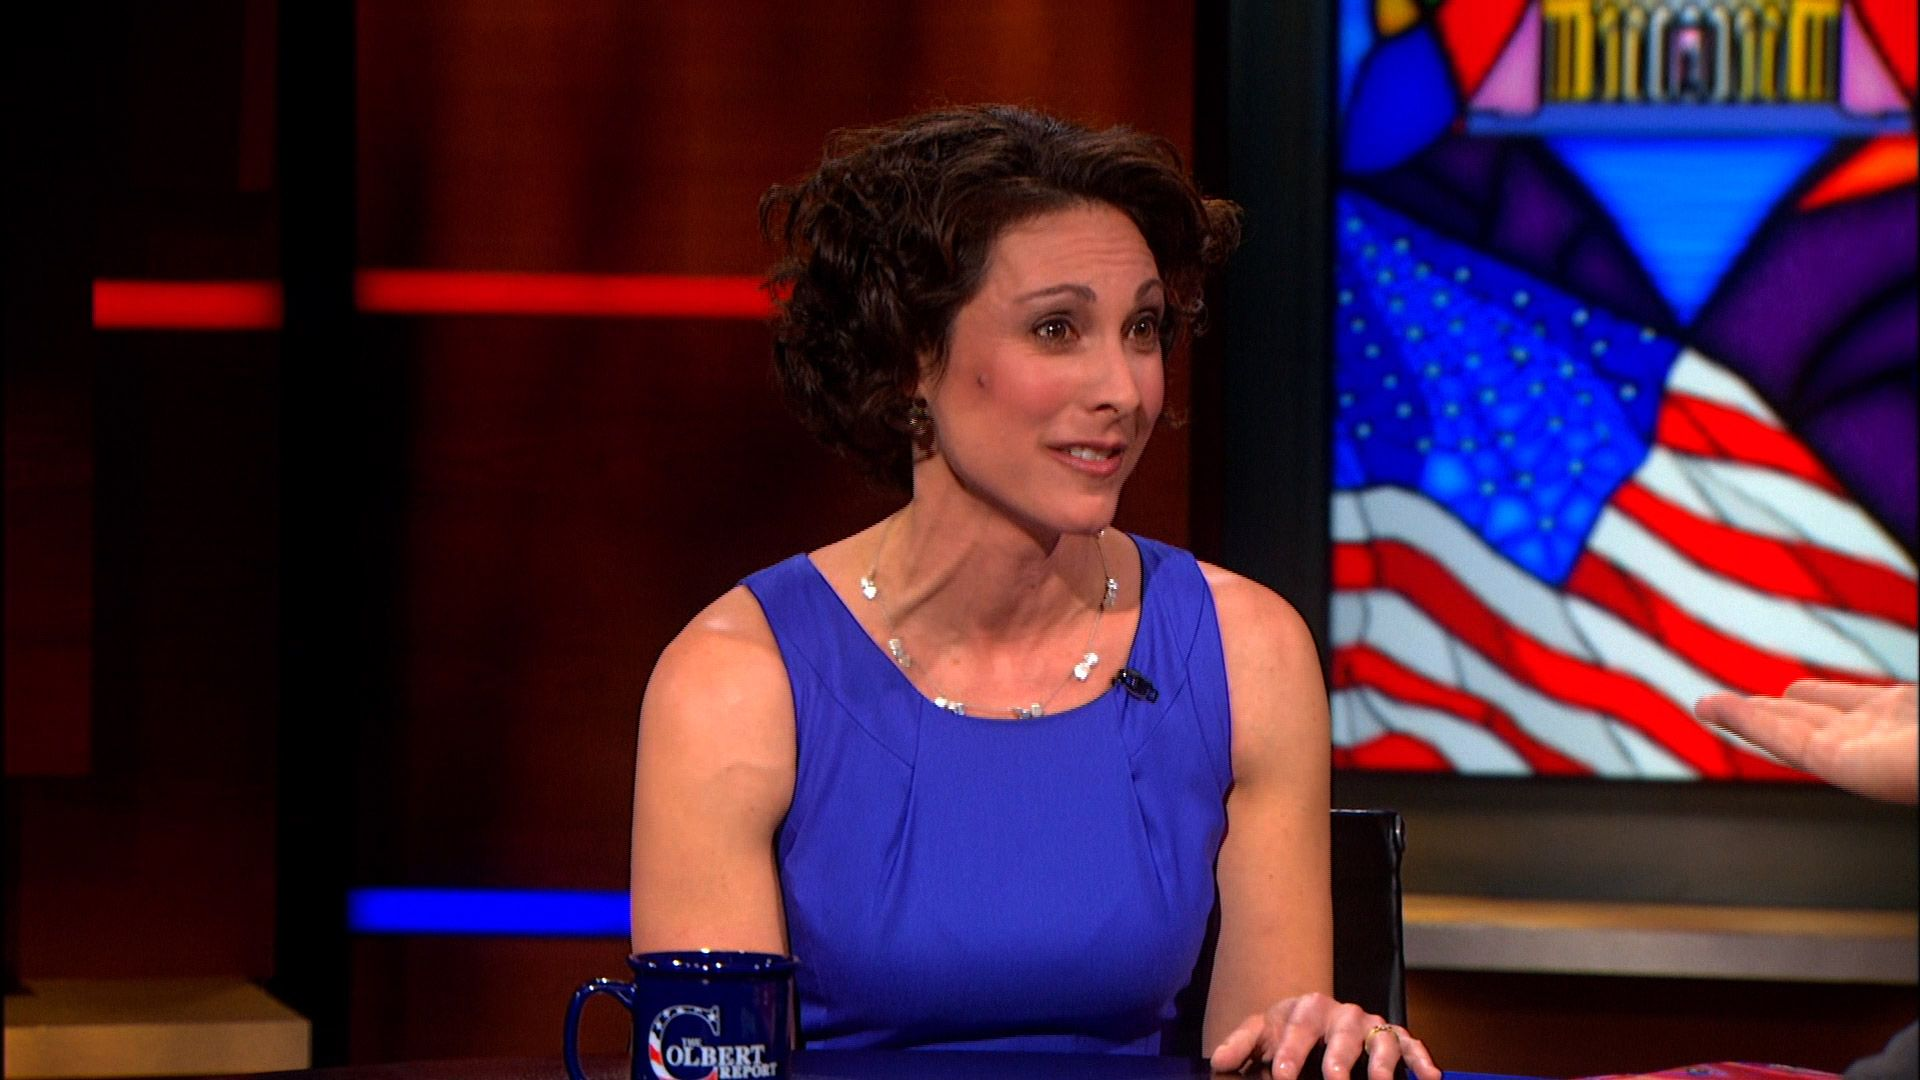 Providing relief to renters, landlords, immigrants governor hochul has … Emily Bazelon - The Colbert Report (Video Clip) | Comedy